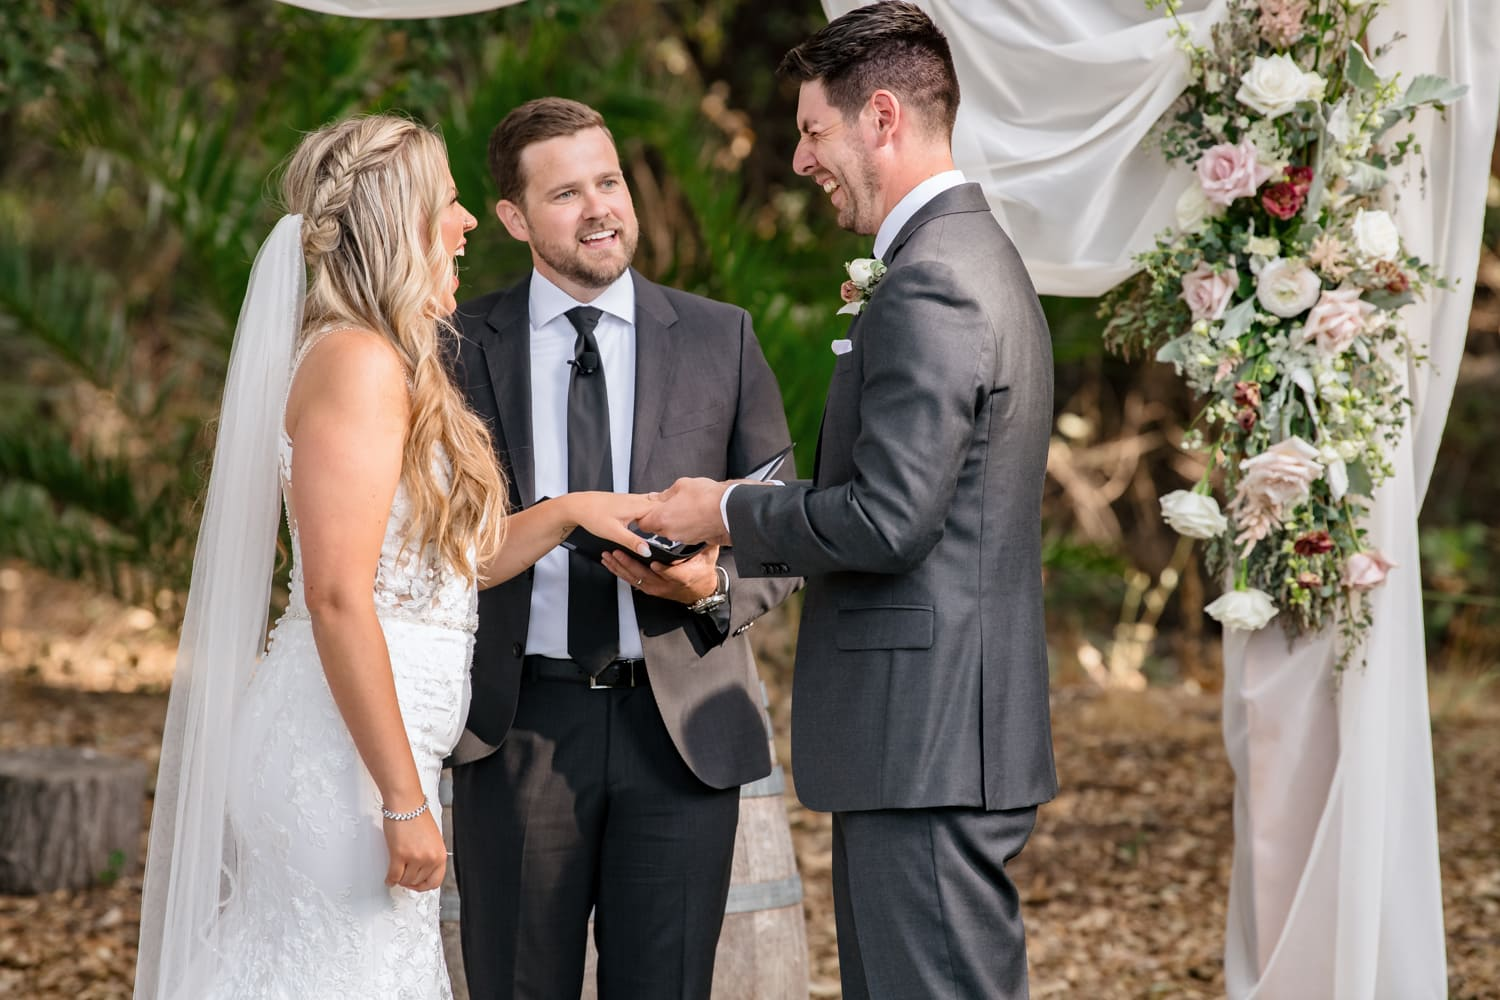 Ring exchange during ceremony at The Stone House in Temecula, CA